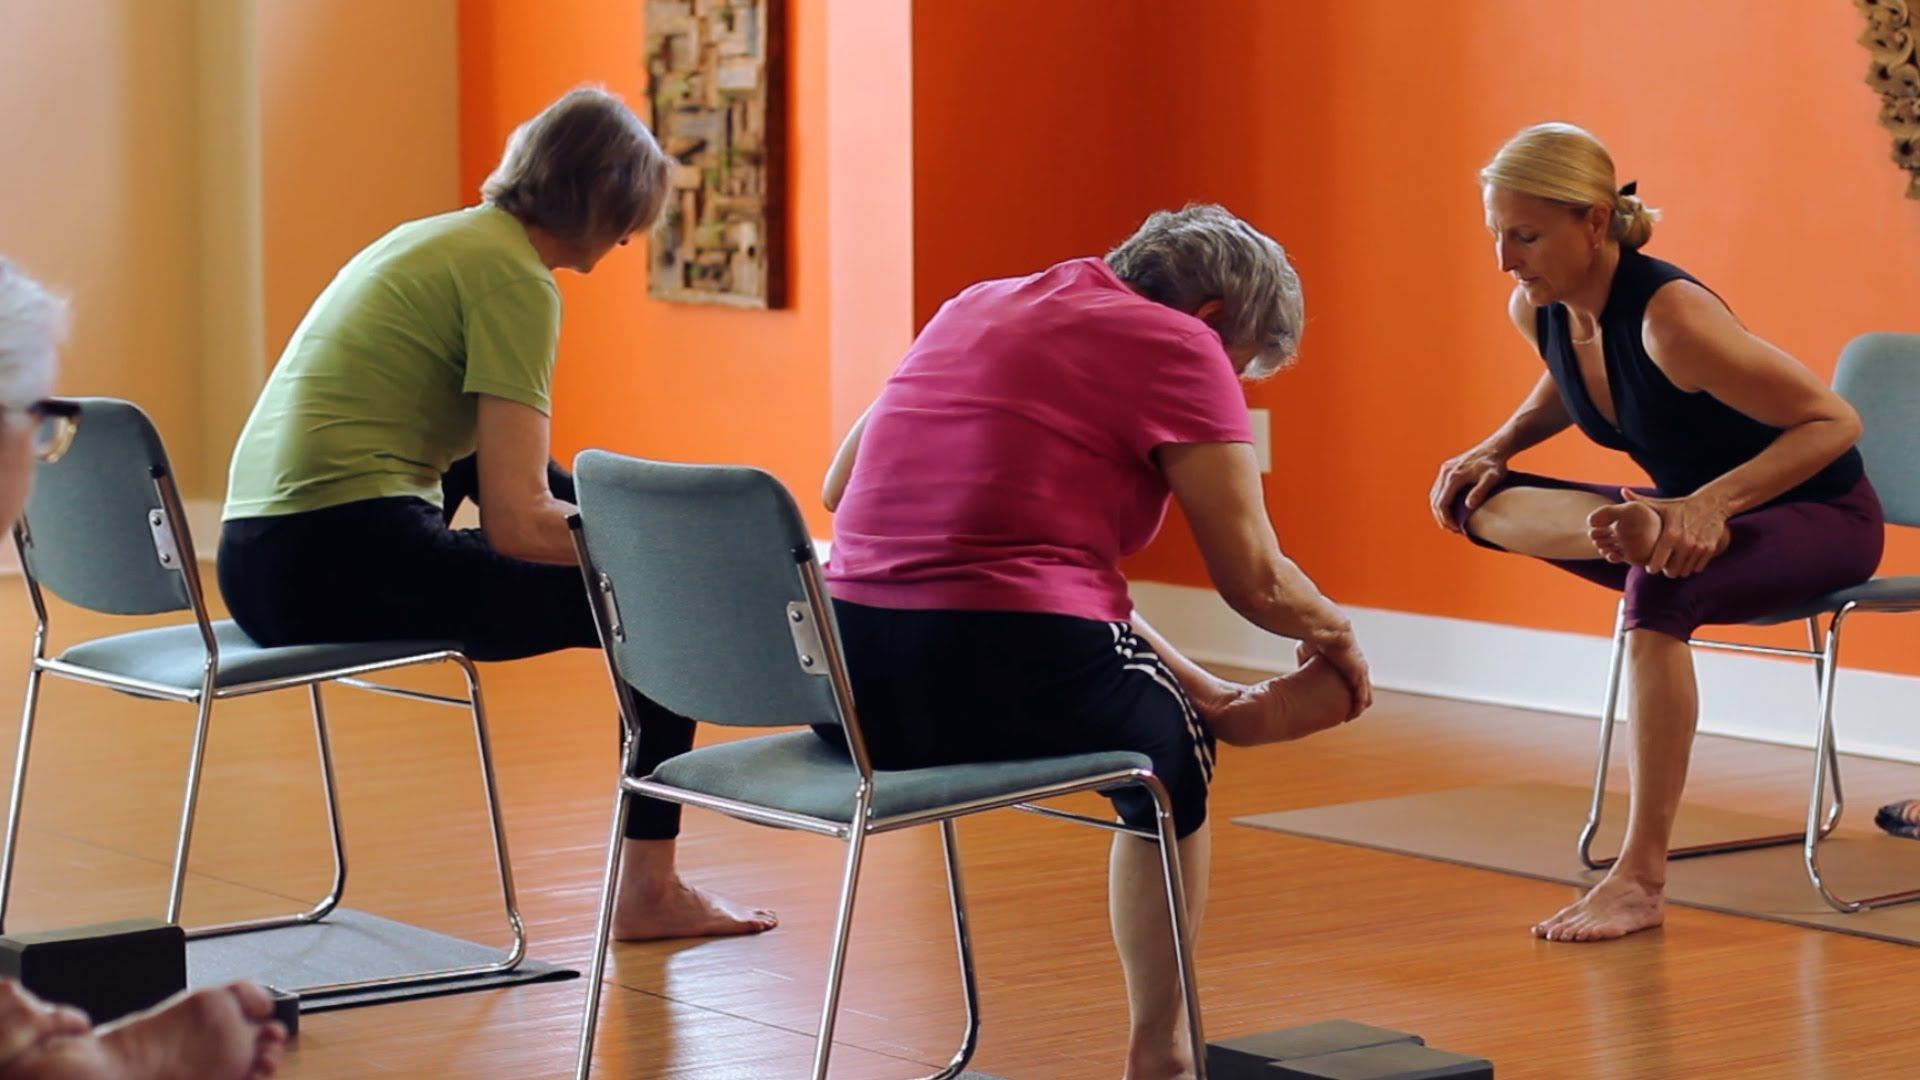 yoga chair exercises for seniors toddler chairs and table join kate taylor a 45 minute based class